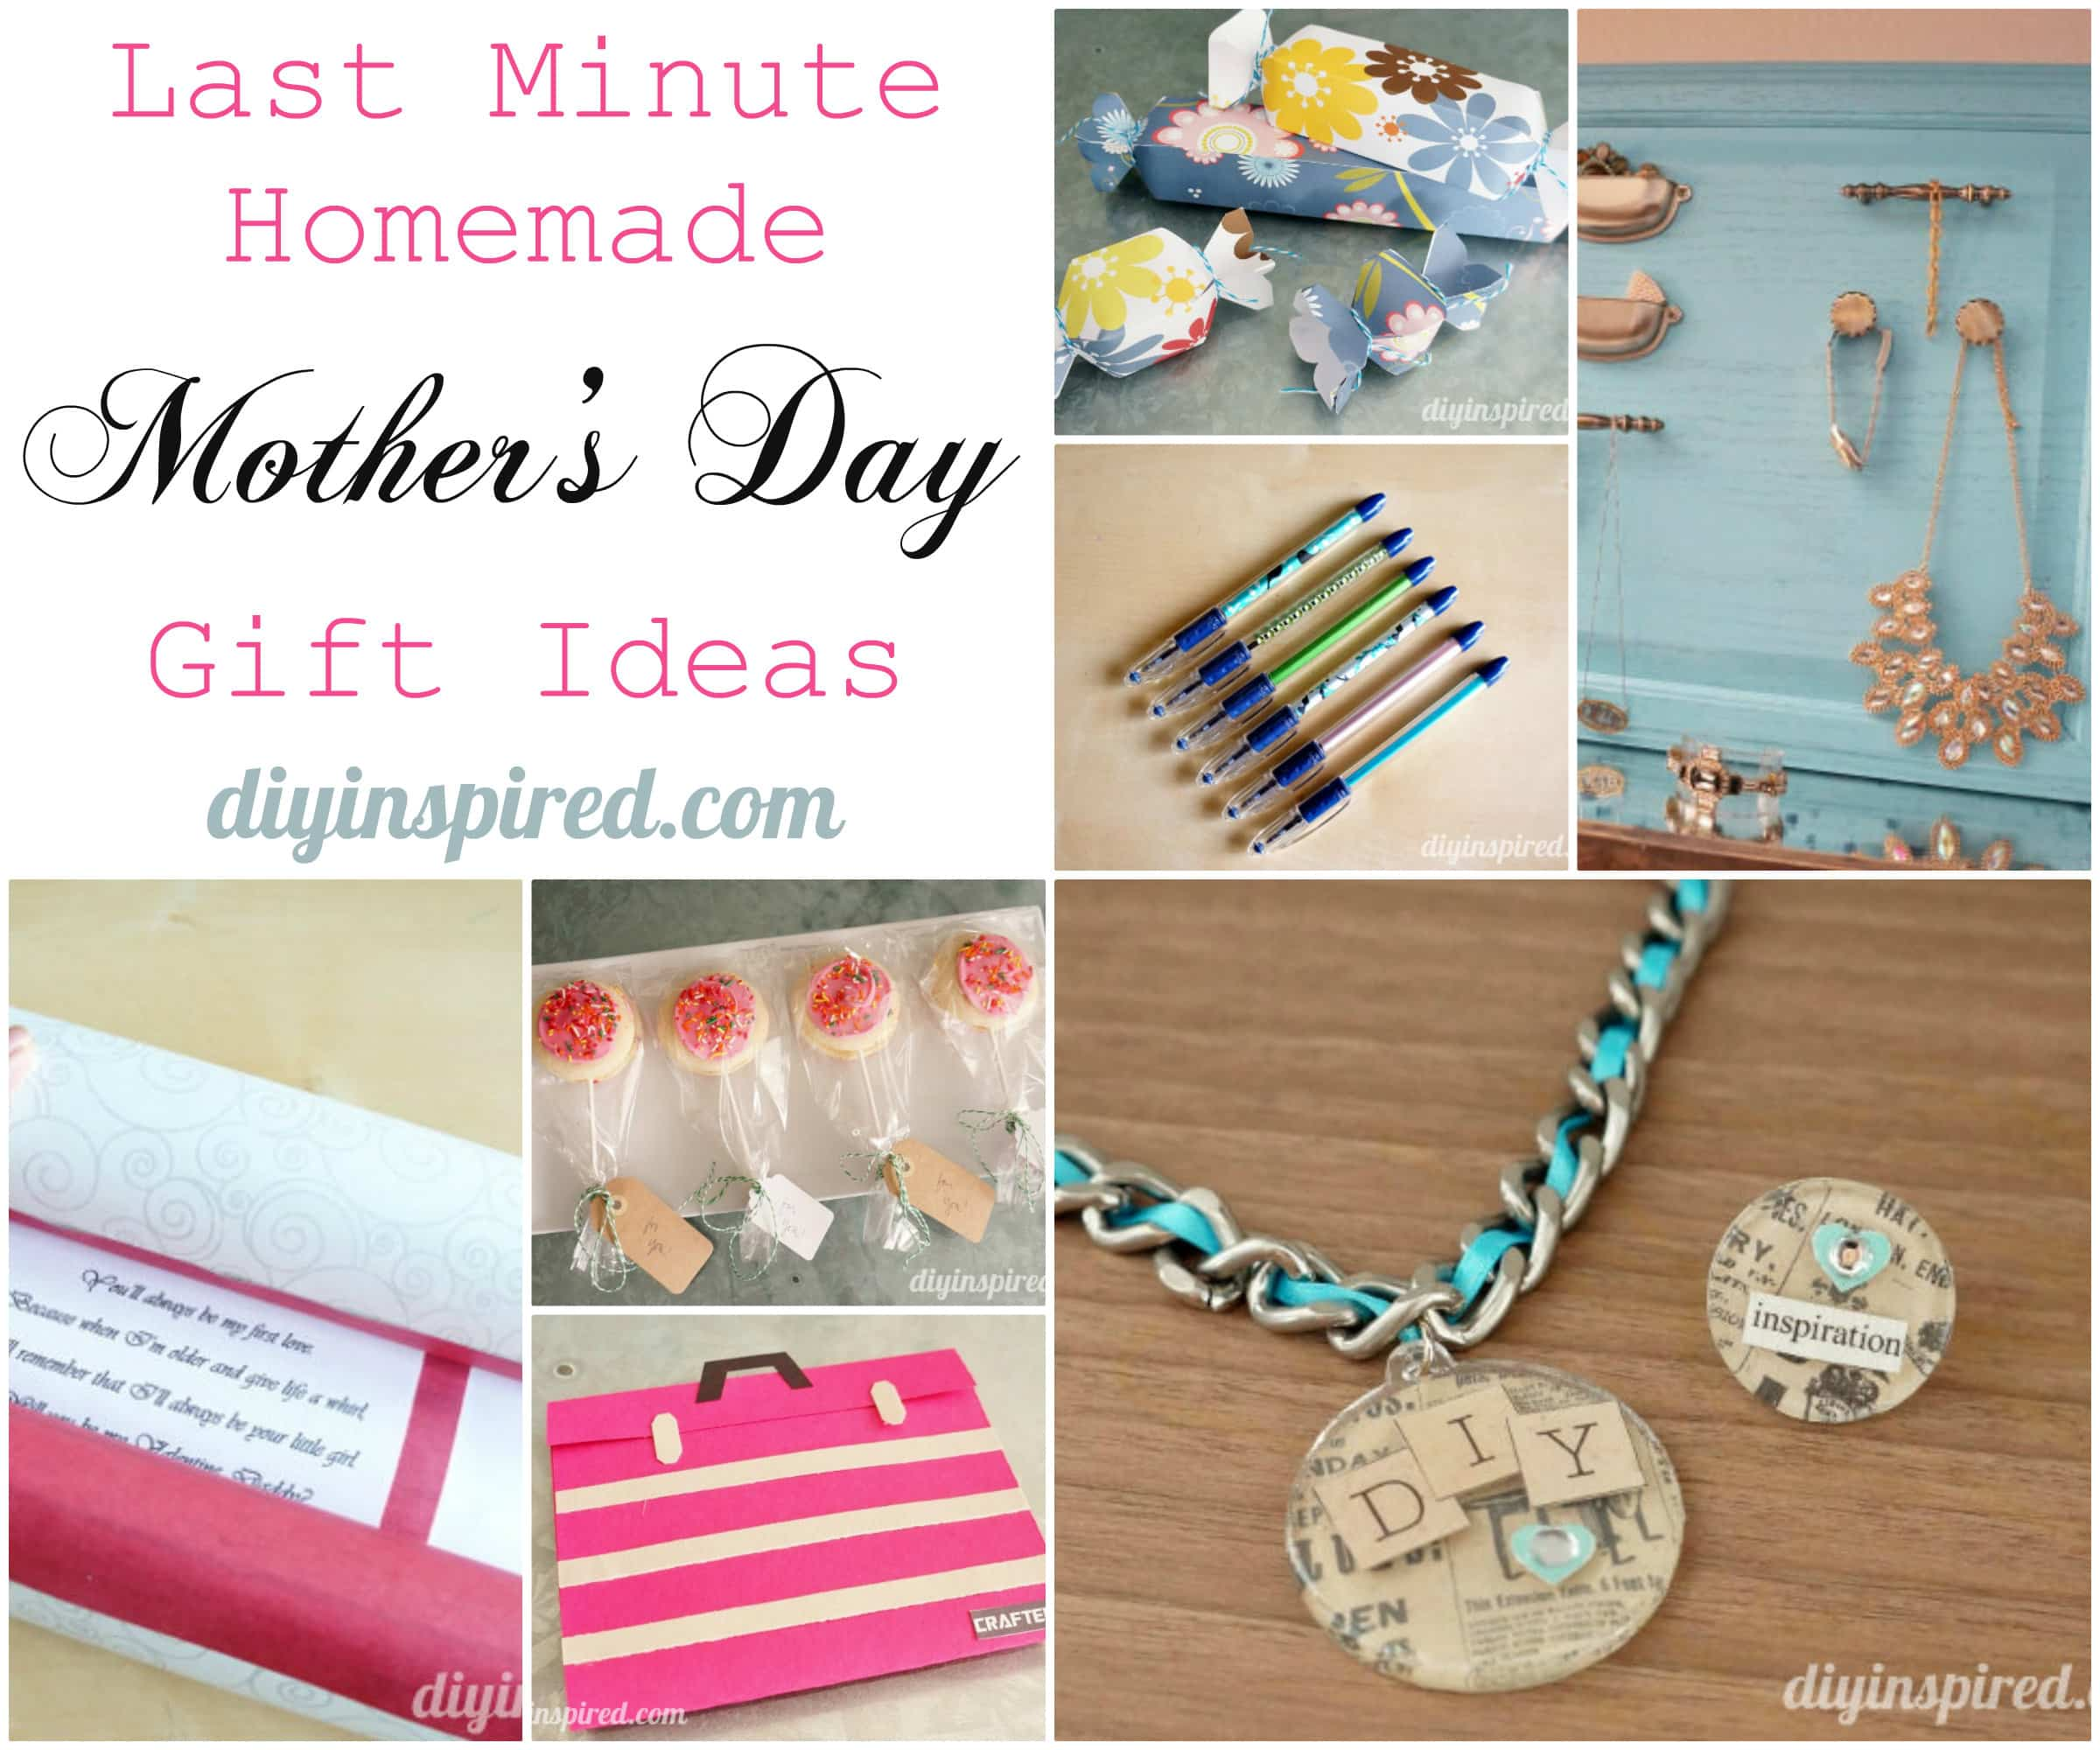 Diy gift ideas Mothers day presents diy